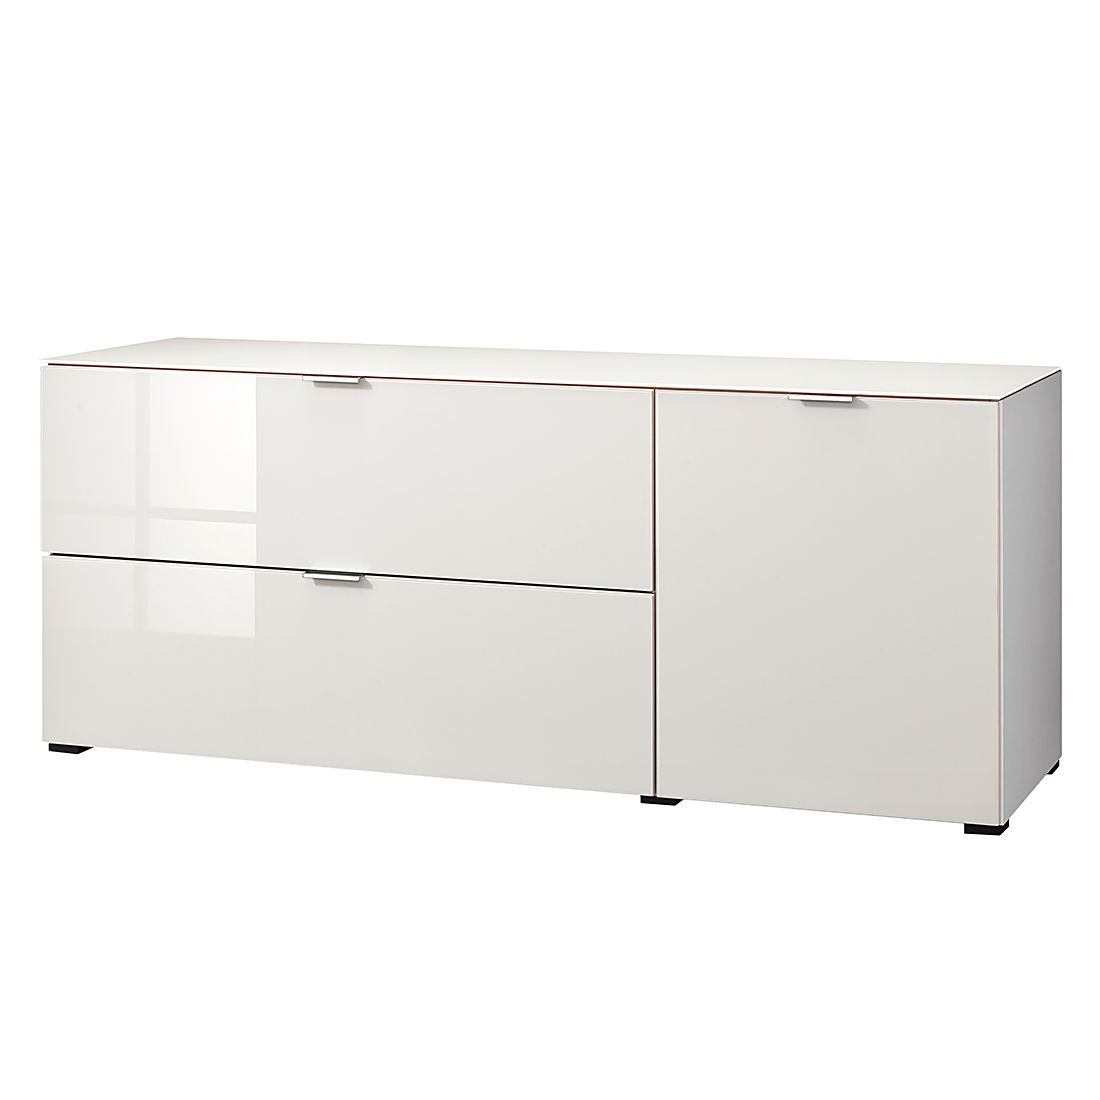 Sideboard cleo i wei glas sand cs schmal m cs kl0279 for Relaxsessel schmal